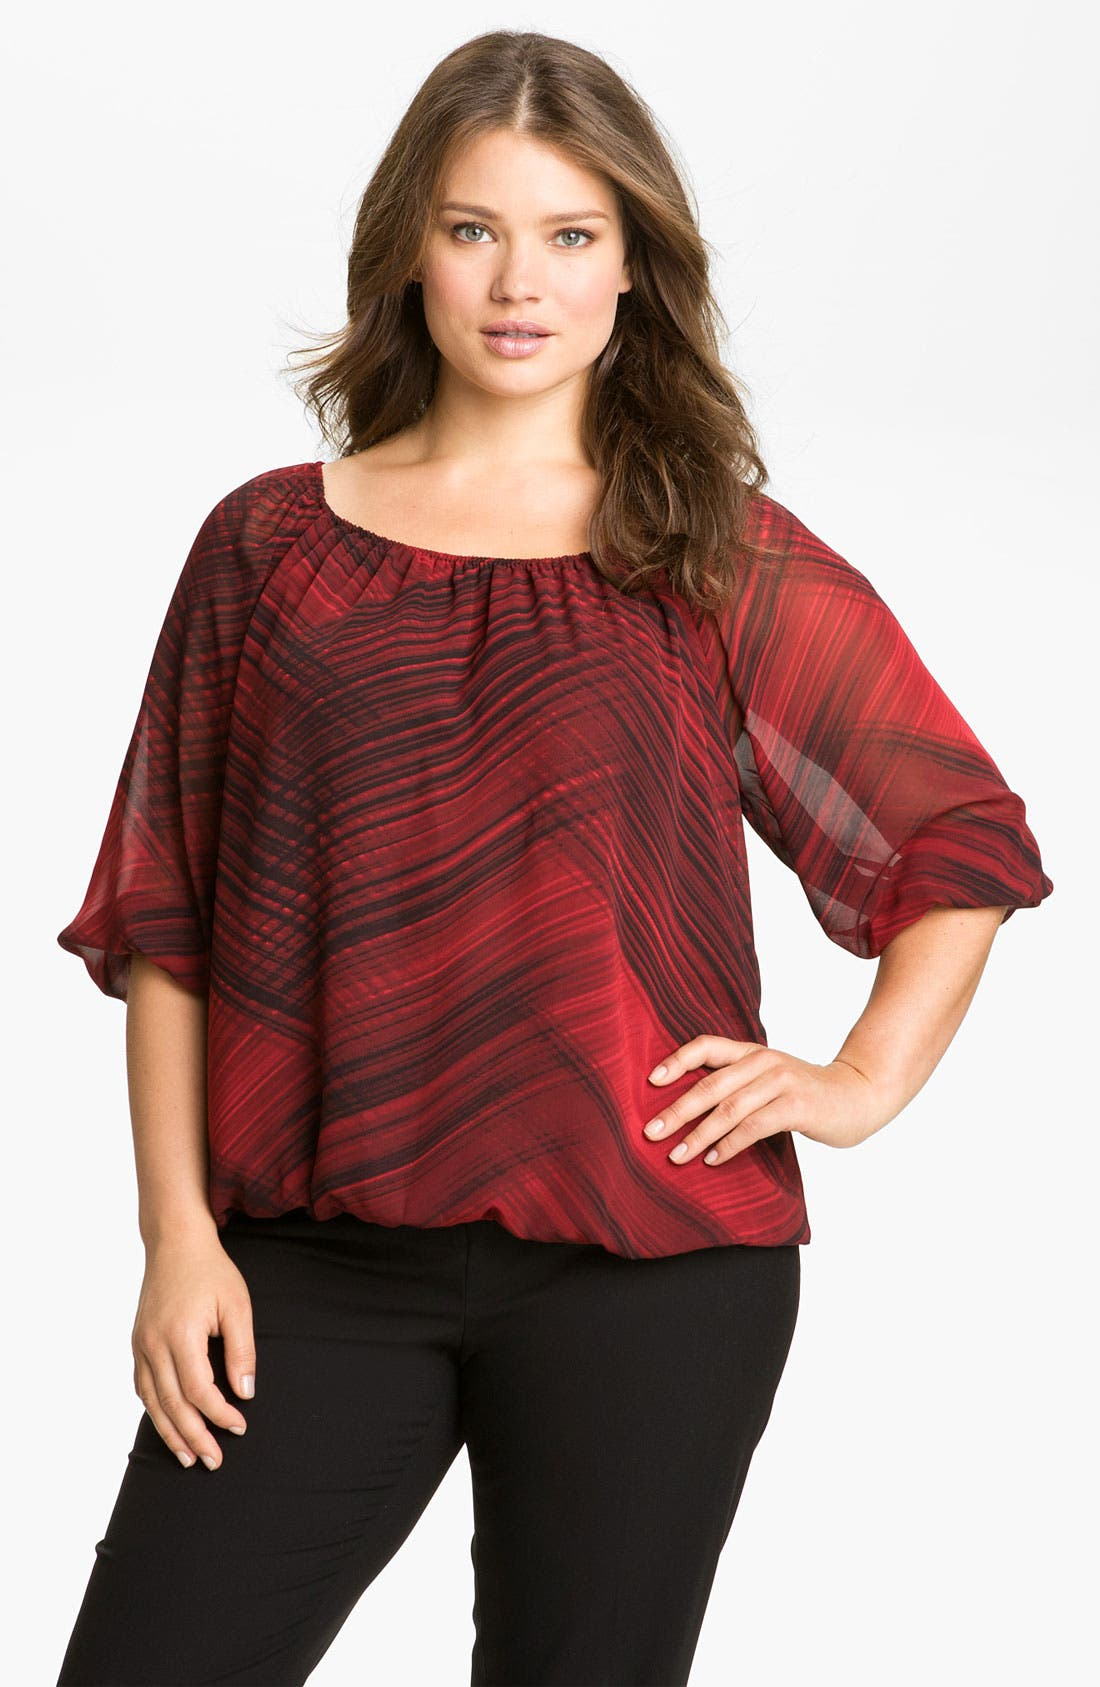 Alternate Image 1 Selected - Vince Camuto 'Brushstrokes' Peasant Blouse (Plus)